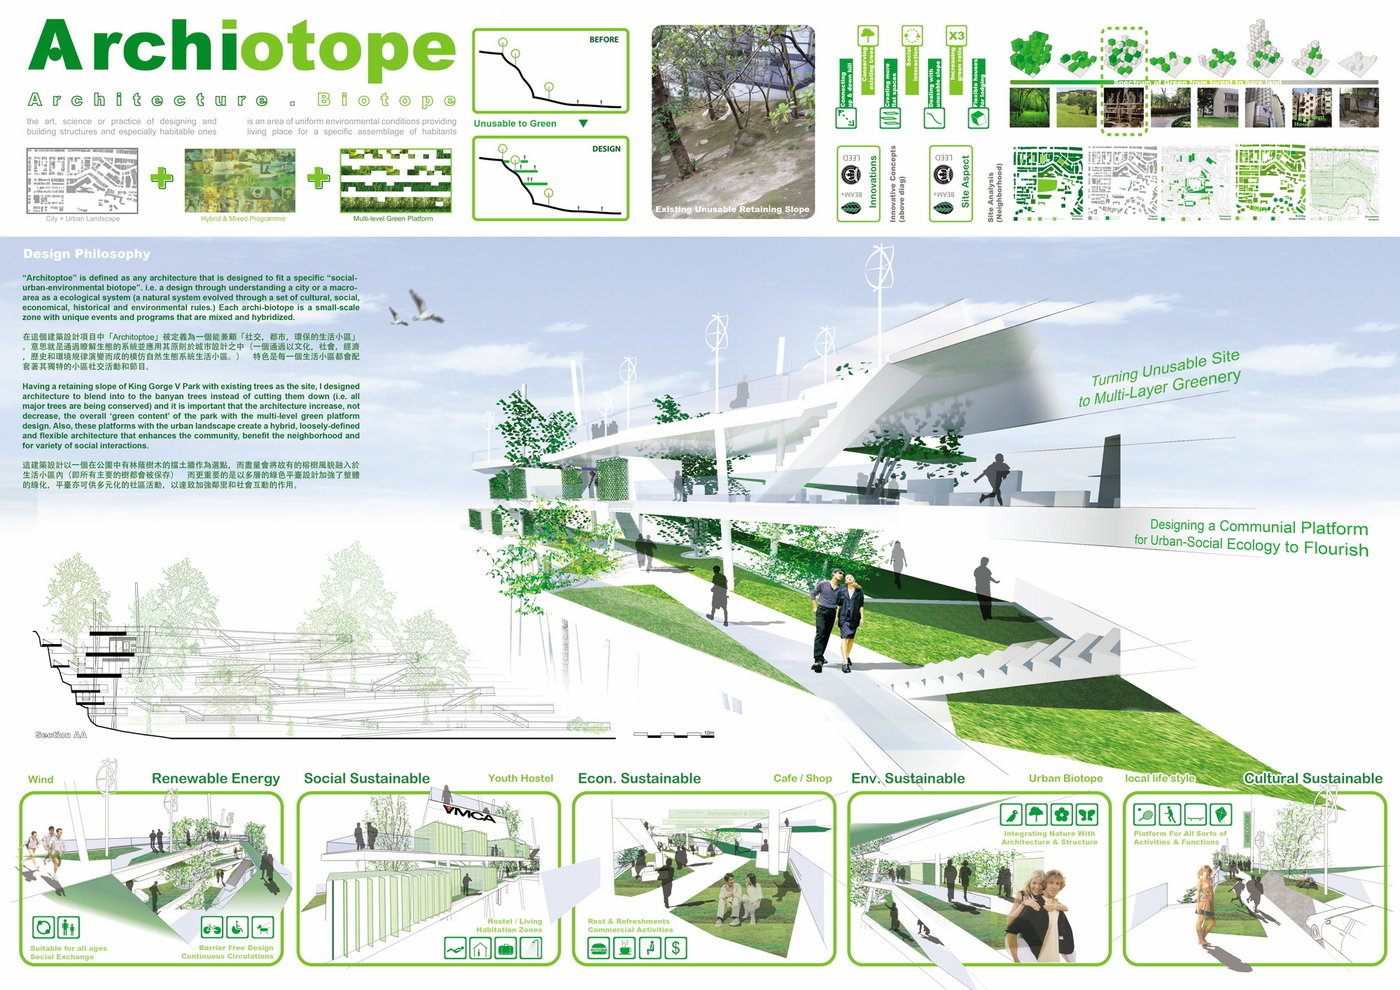 inaugural international tropical architecture design competition for